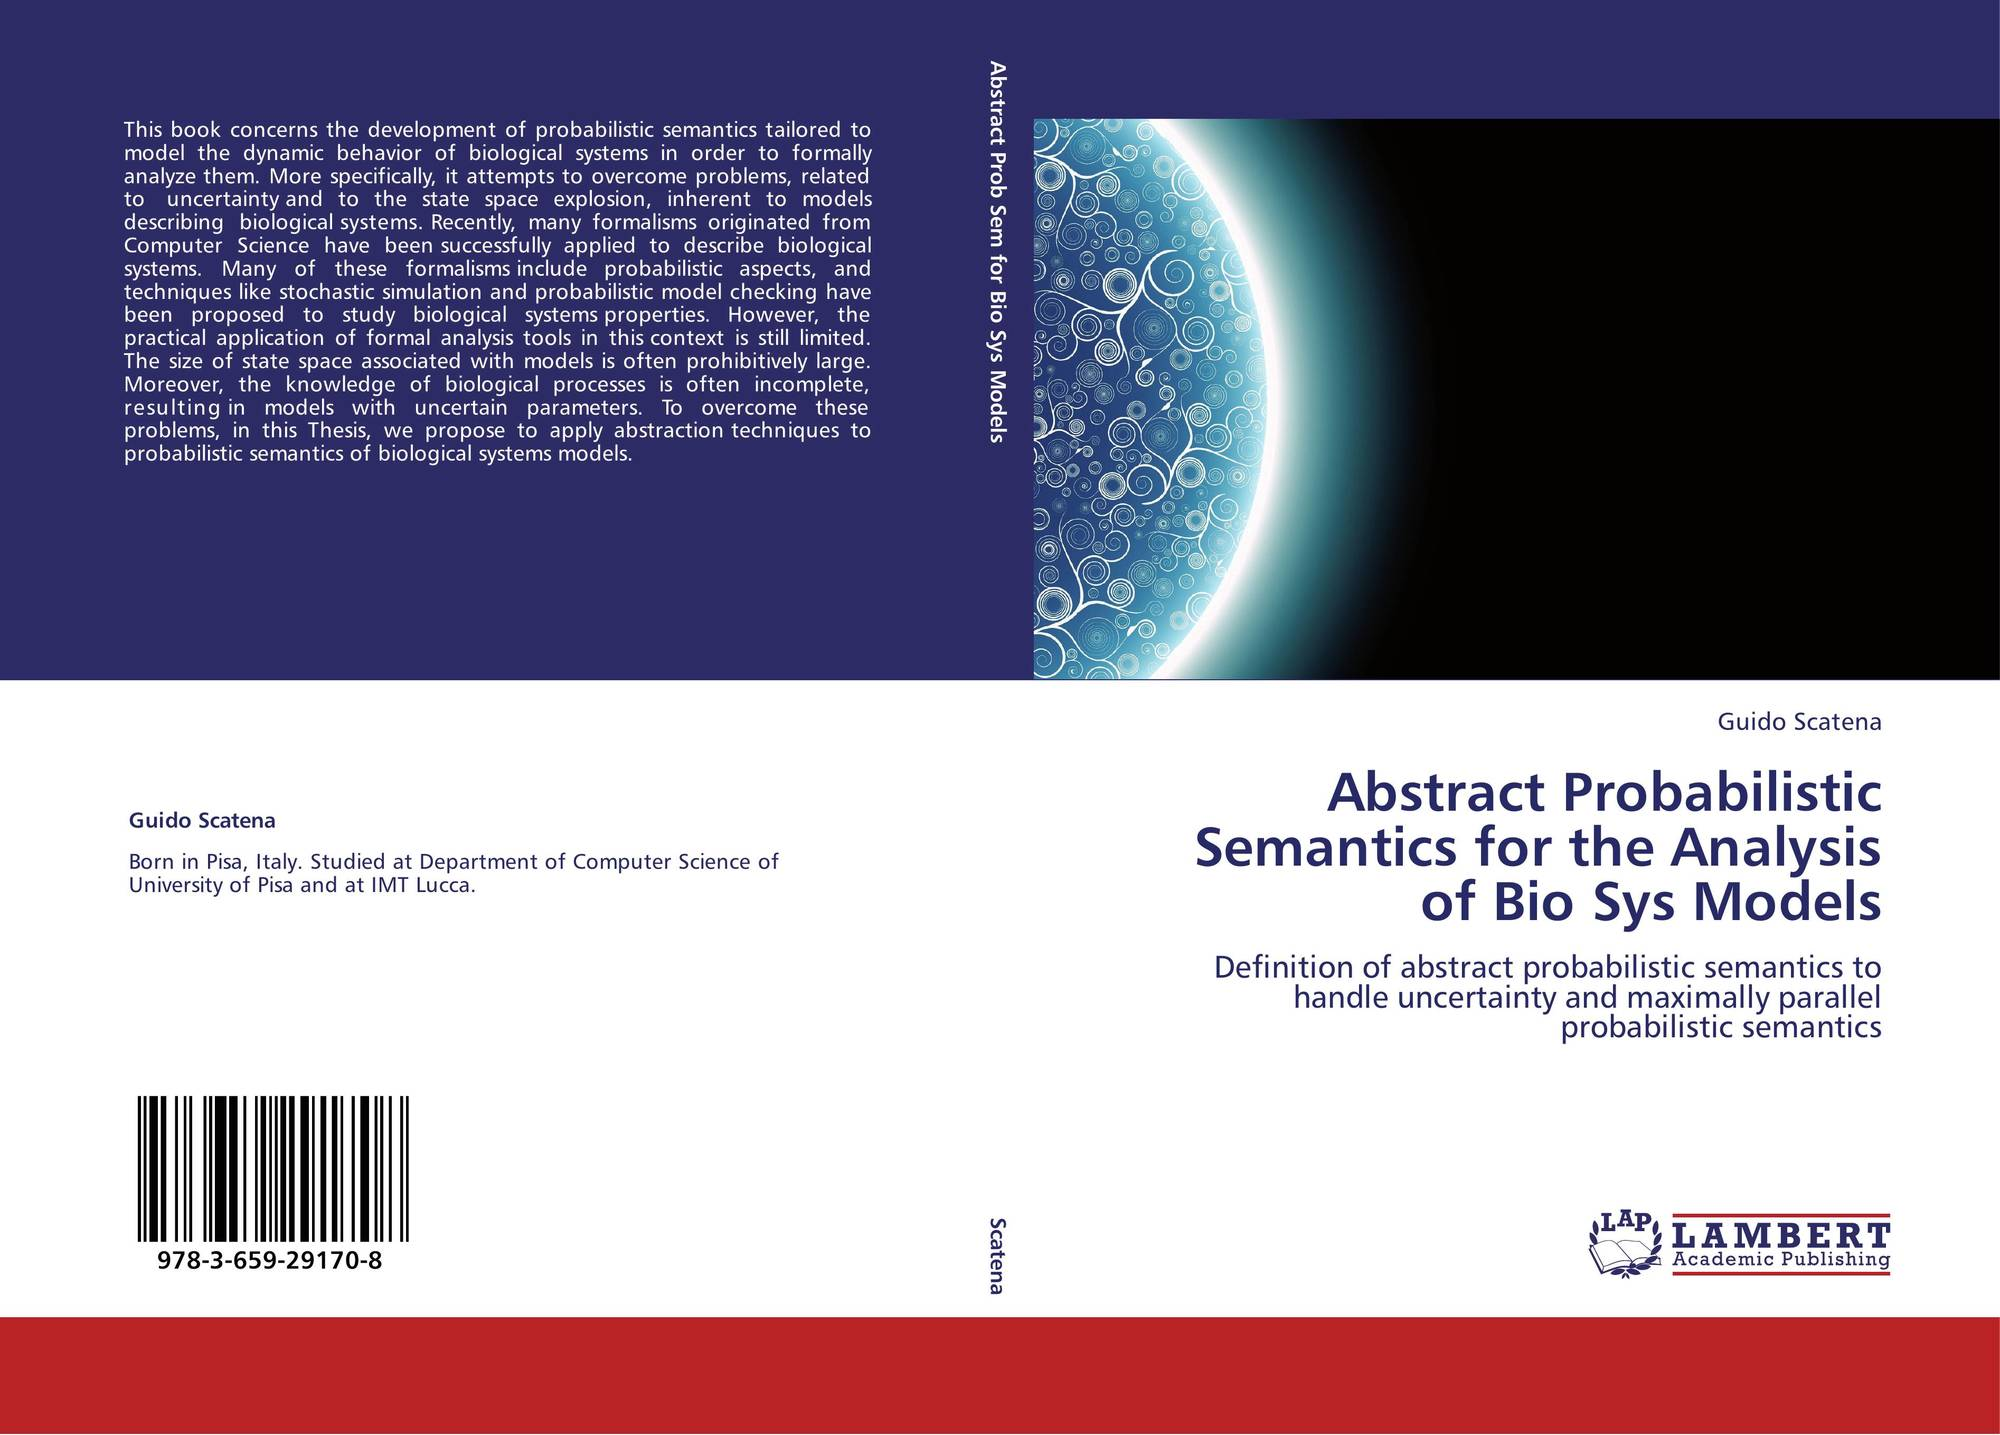 Abstract Probabilistic Semantics For The Analysis Of Bio Sys